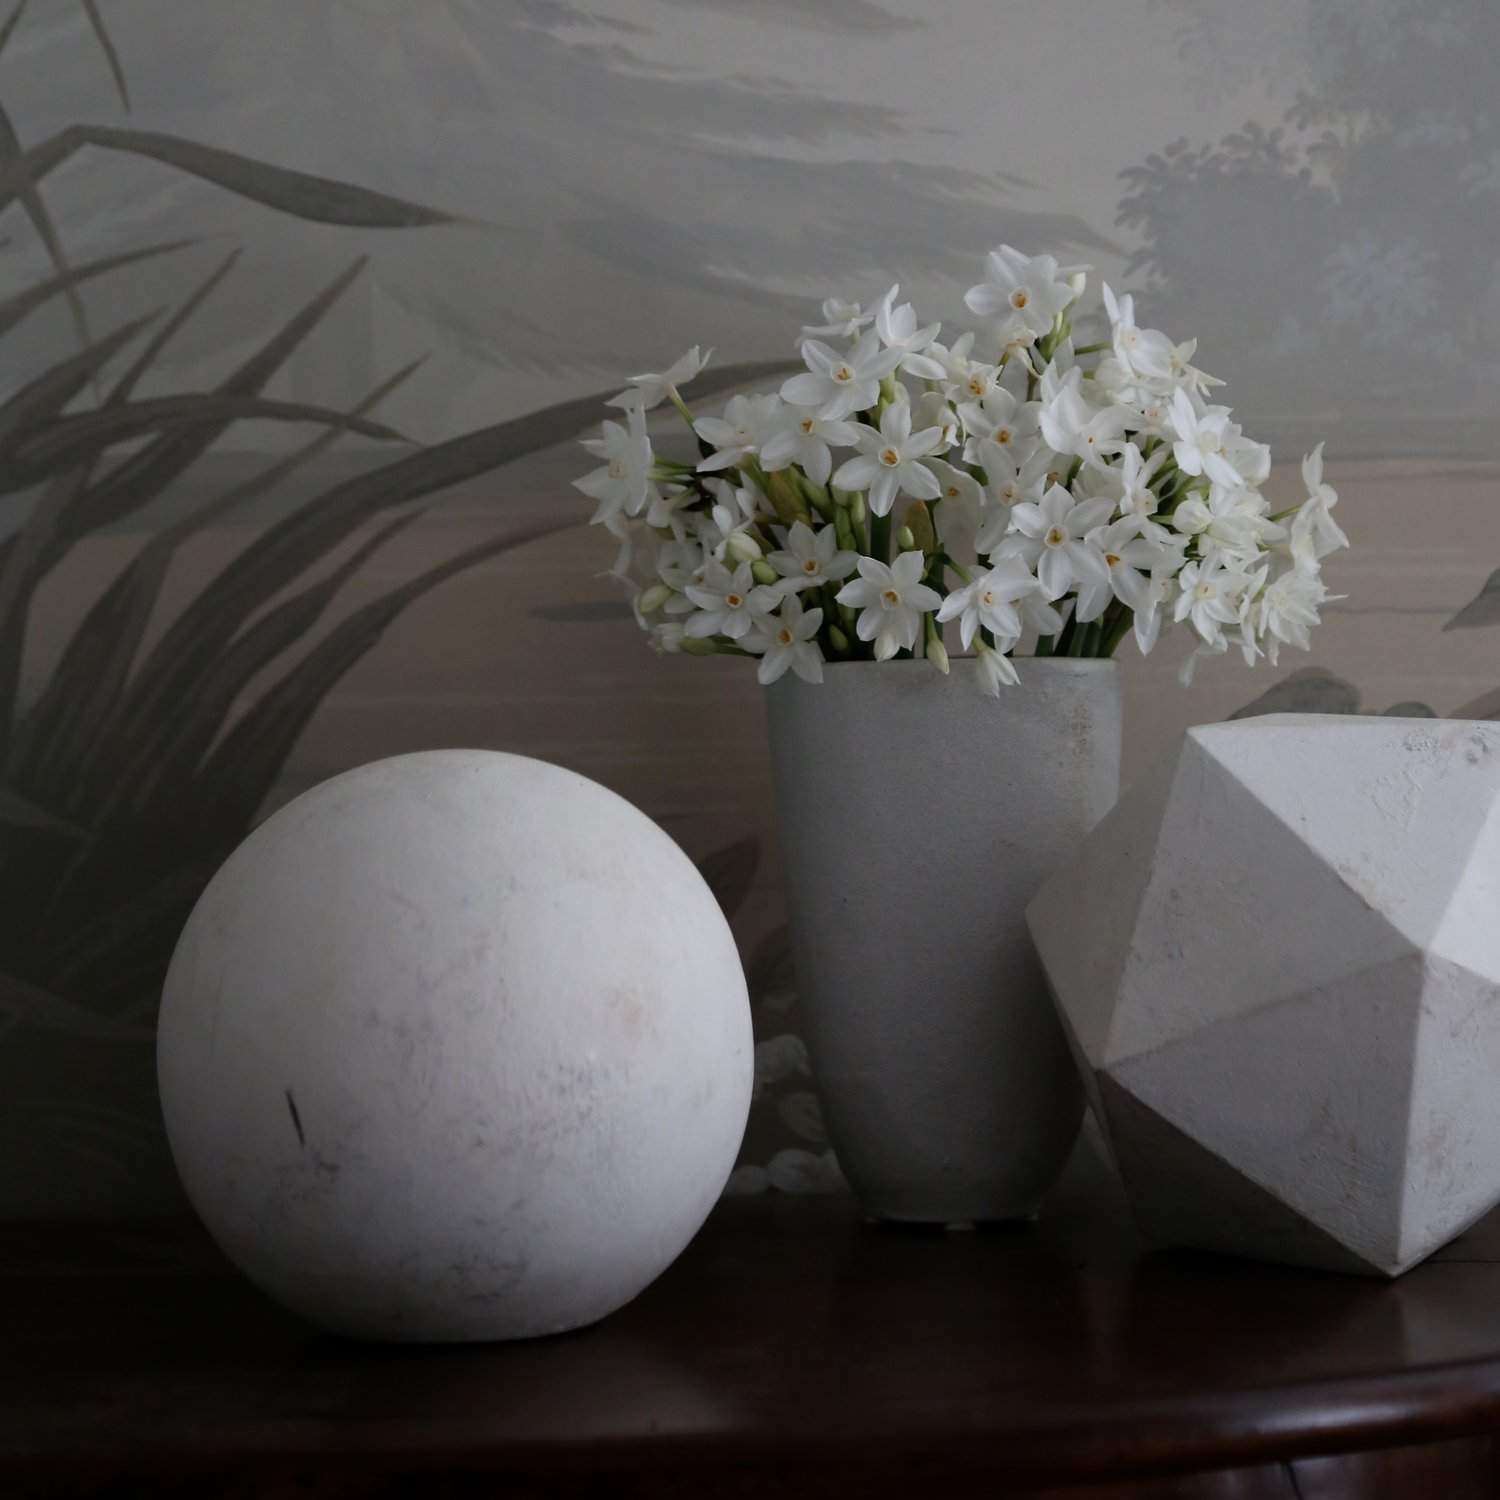 Geometric shapes by Amy Meier. Classical Interior Designer Amy Meier. #geometric #classical #decor #vignette #lightgrey